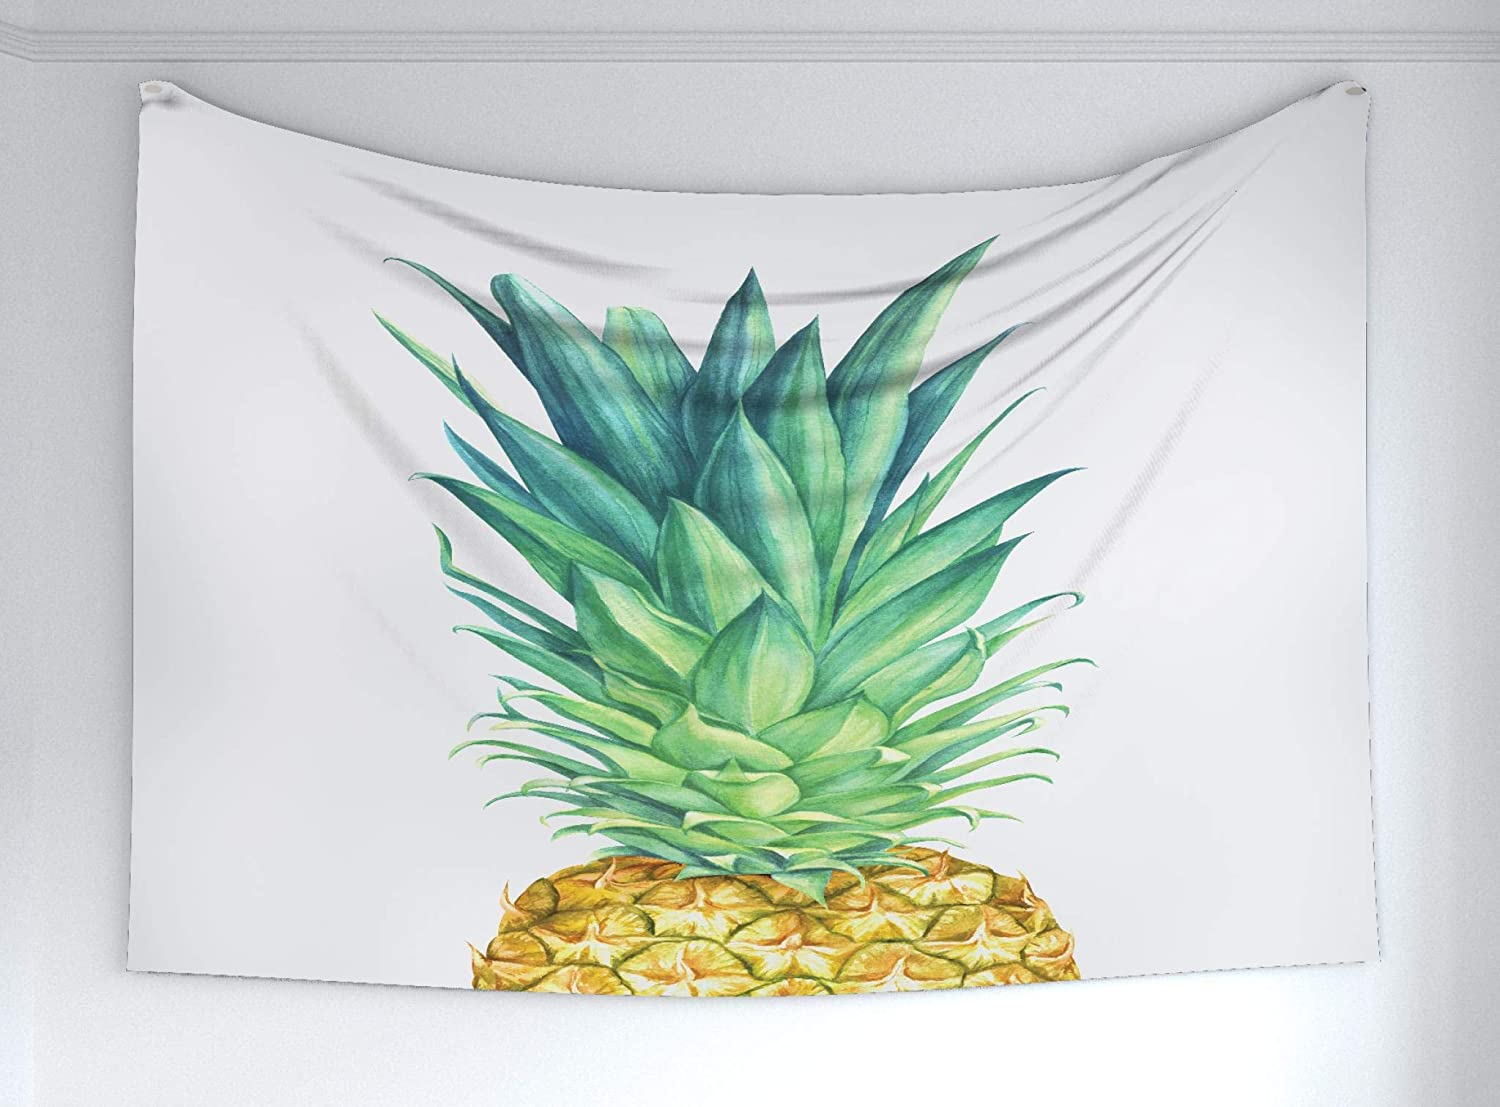 Ambesonne Pineapple Tapestry, Flora Hawaii Themed Fresh Summer Fruit American Exotic Food Vegan, Fabric Wall Hanging Decor Bedroom Living Room Dorm, 60 W X 40 L Inches, Green